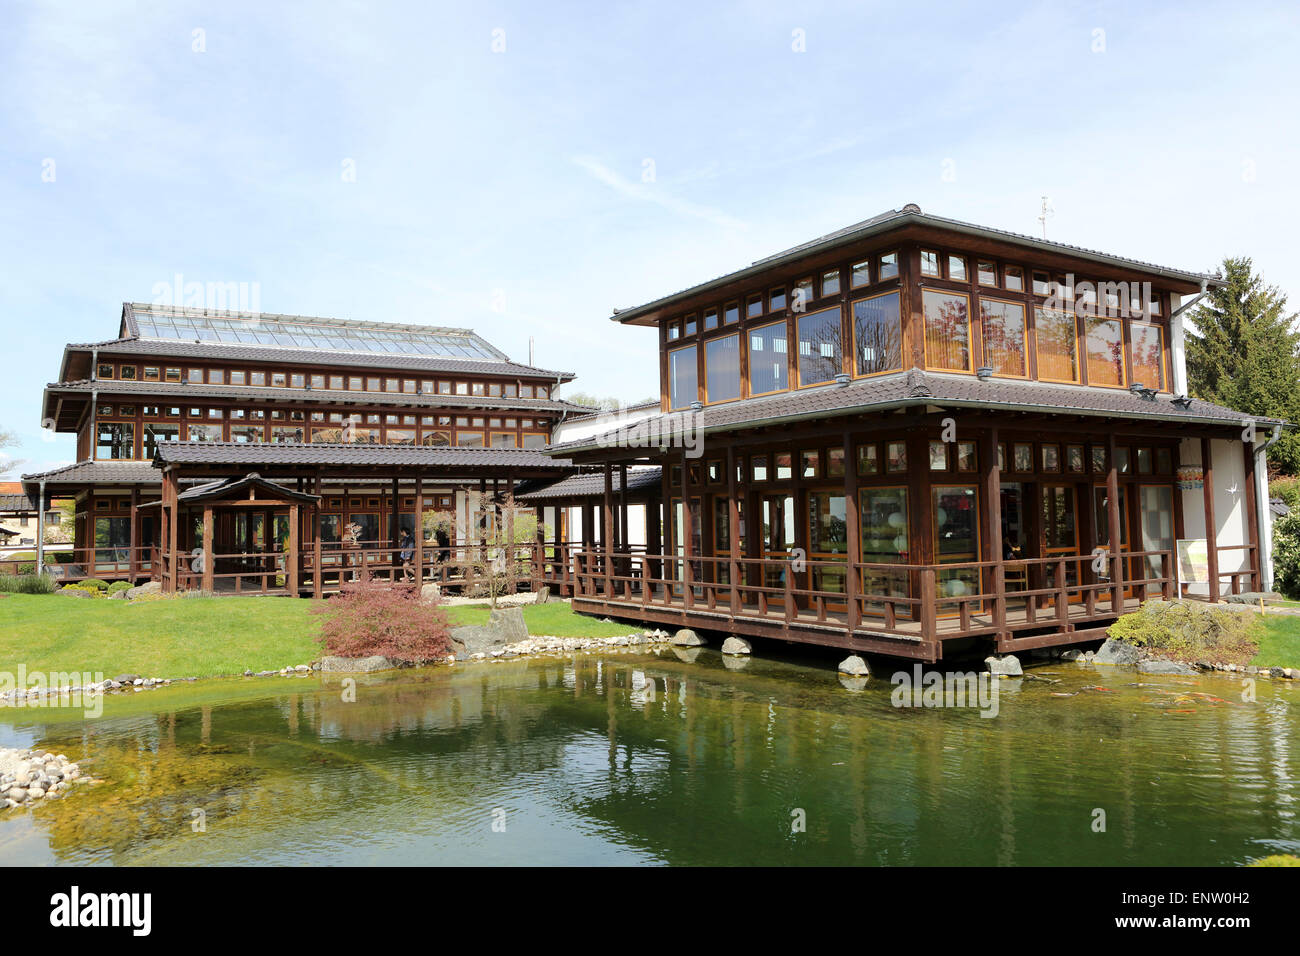 Pavilions by the ornamental pond in the Japanese Garden (Japanischer Garten) in Bad Langensalza, Germany. - Stock Image